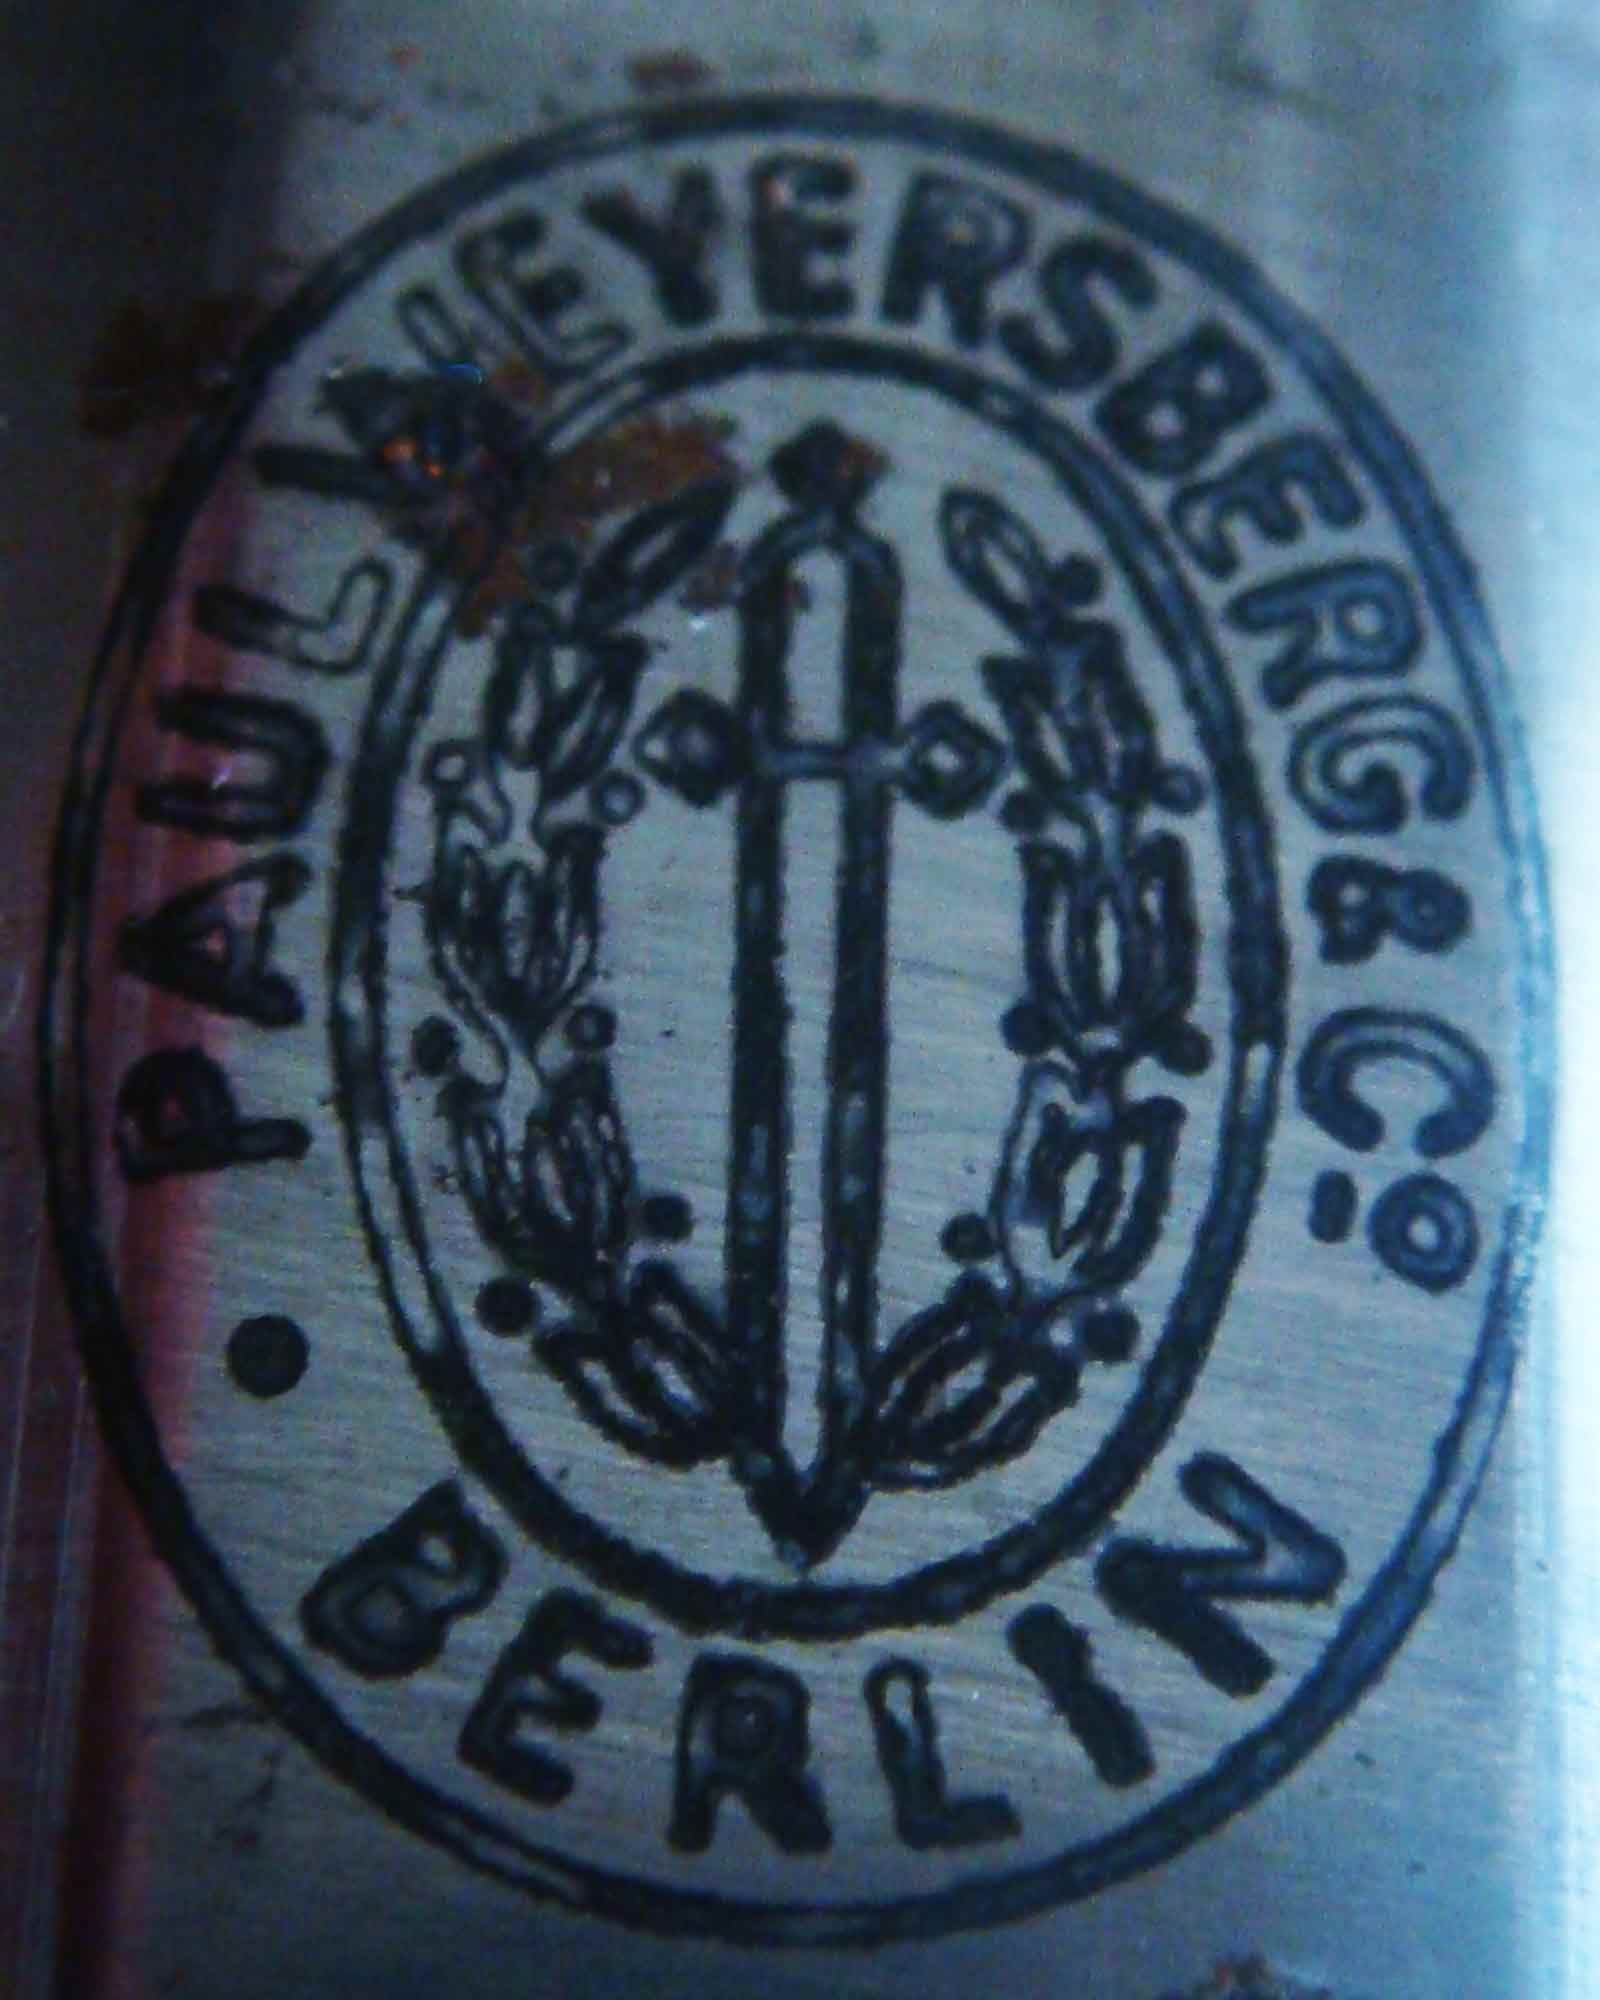 Paul Weyersberg & Co., Berlin (Kopie)